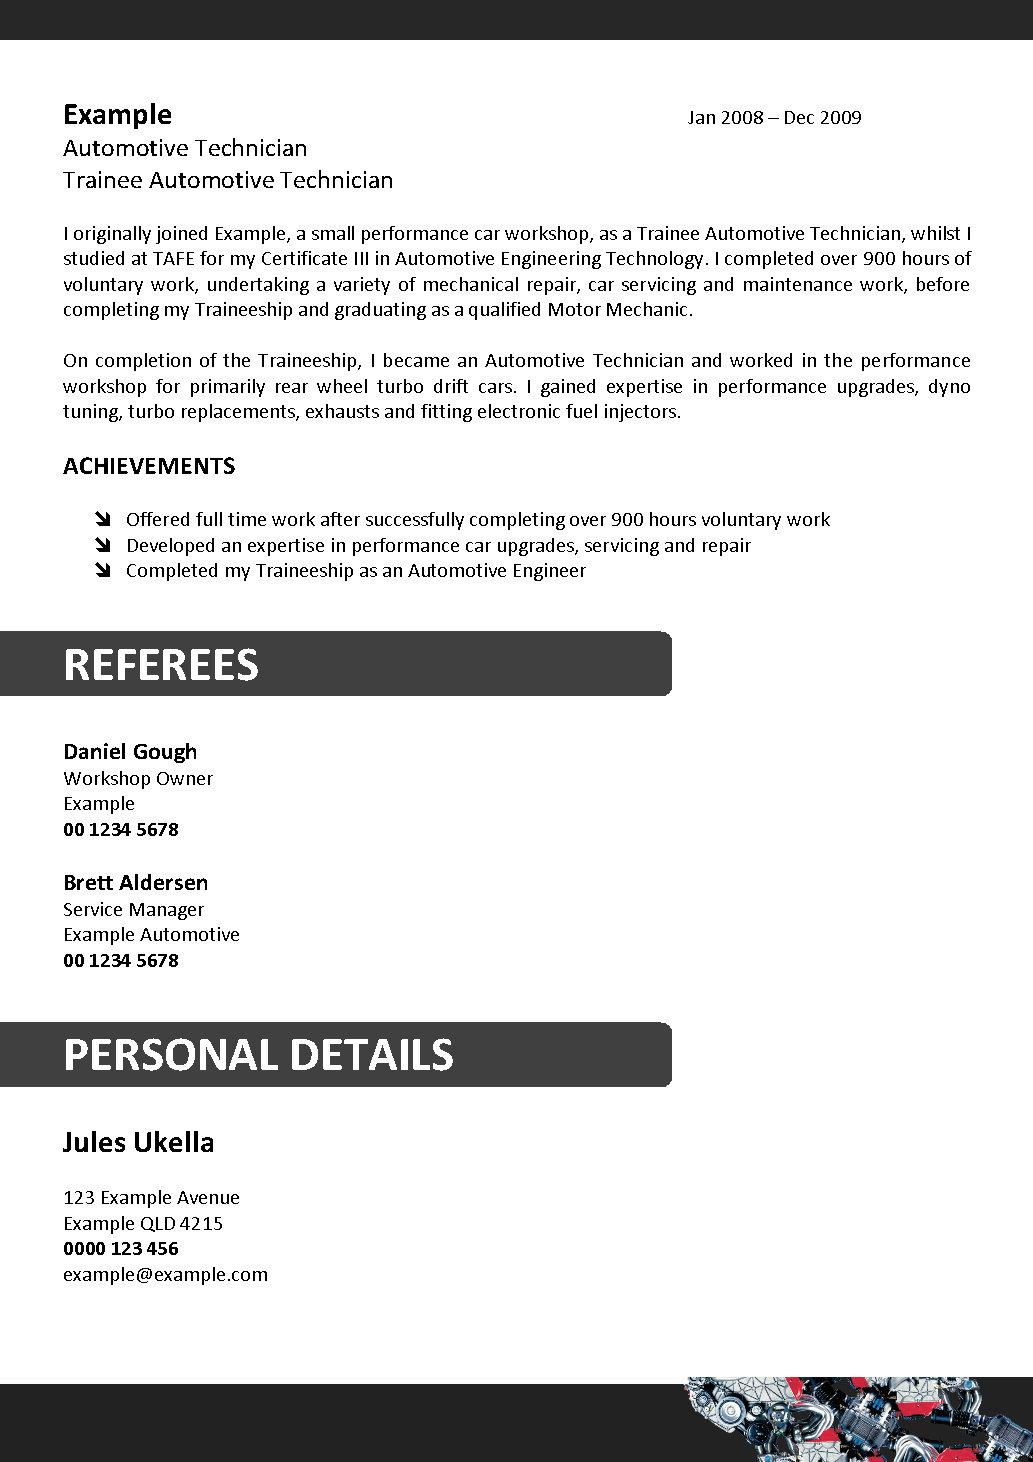 auto mechanic resume resume format pdf auto mechanic resume auto mechanic resumemotor mechanic resume auto mechanic resume sample auto mechanic gallery of